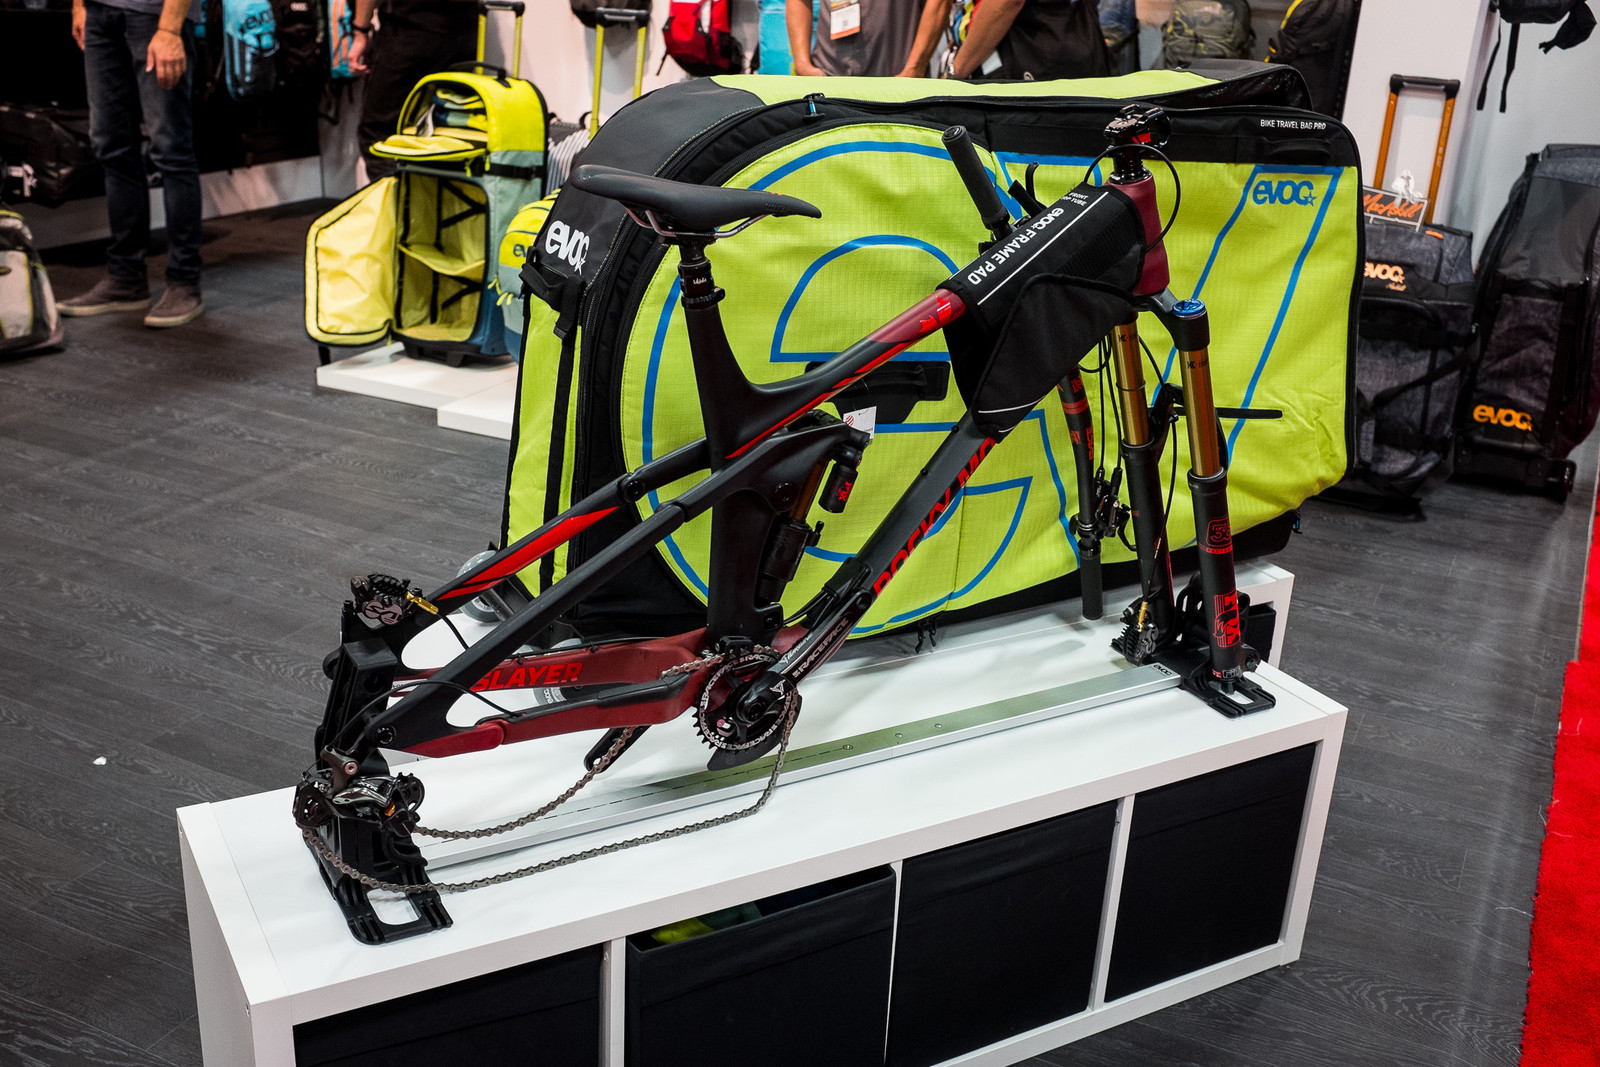 EVOC Alloy Bike Bag Rail System - INTERBIKE - 2017 Mountain Bike Apparel and Protective Gear - Mountain Biking Pictures - Vital MTB